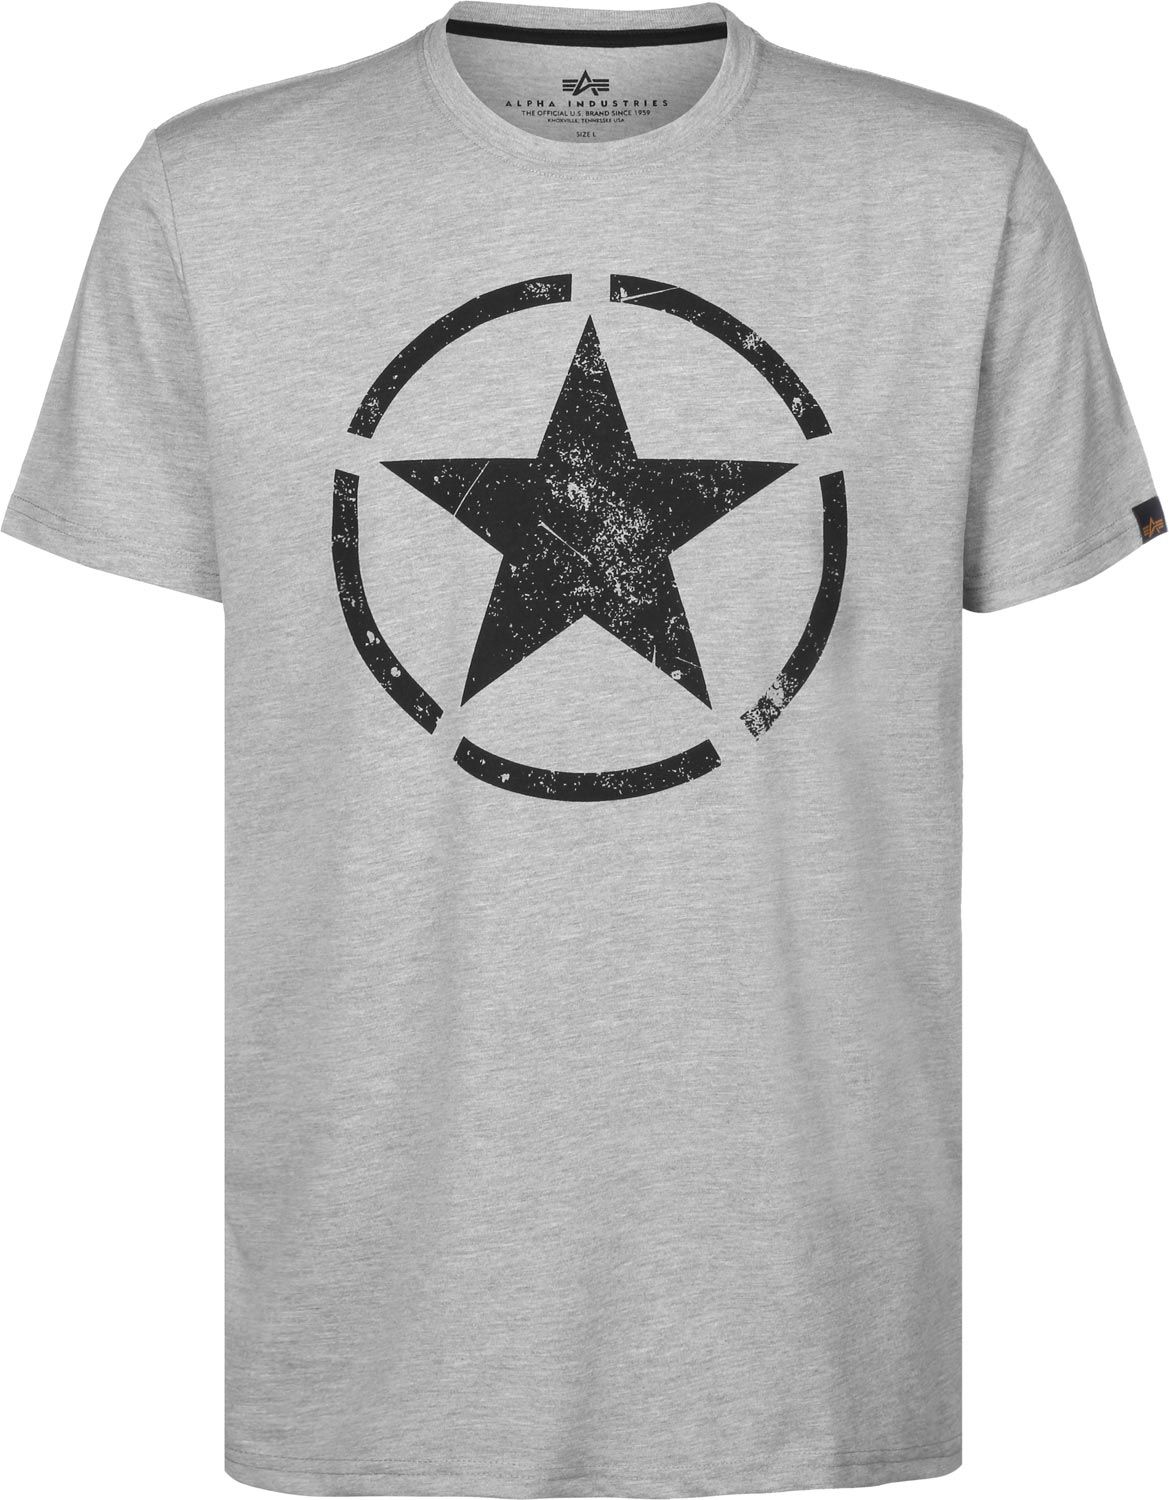 Alpha Industries triko Star T Greyh/black